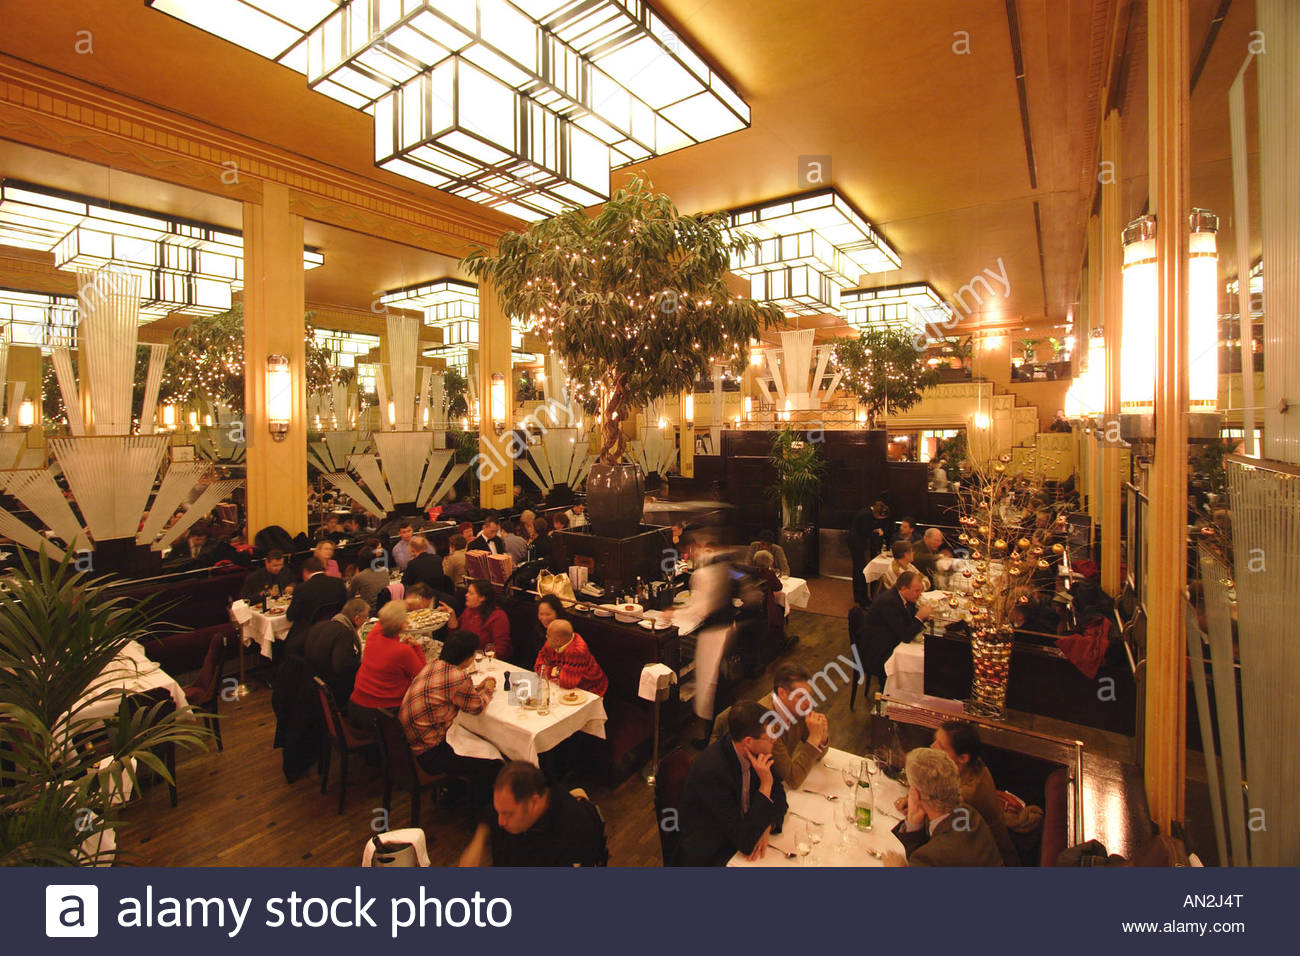 Toit Terrasse Restaurant Paris Paris Le Boeuf Sur Le Toit Restaurant Stock Photo